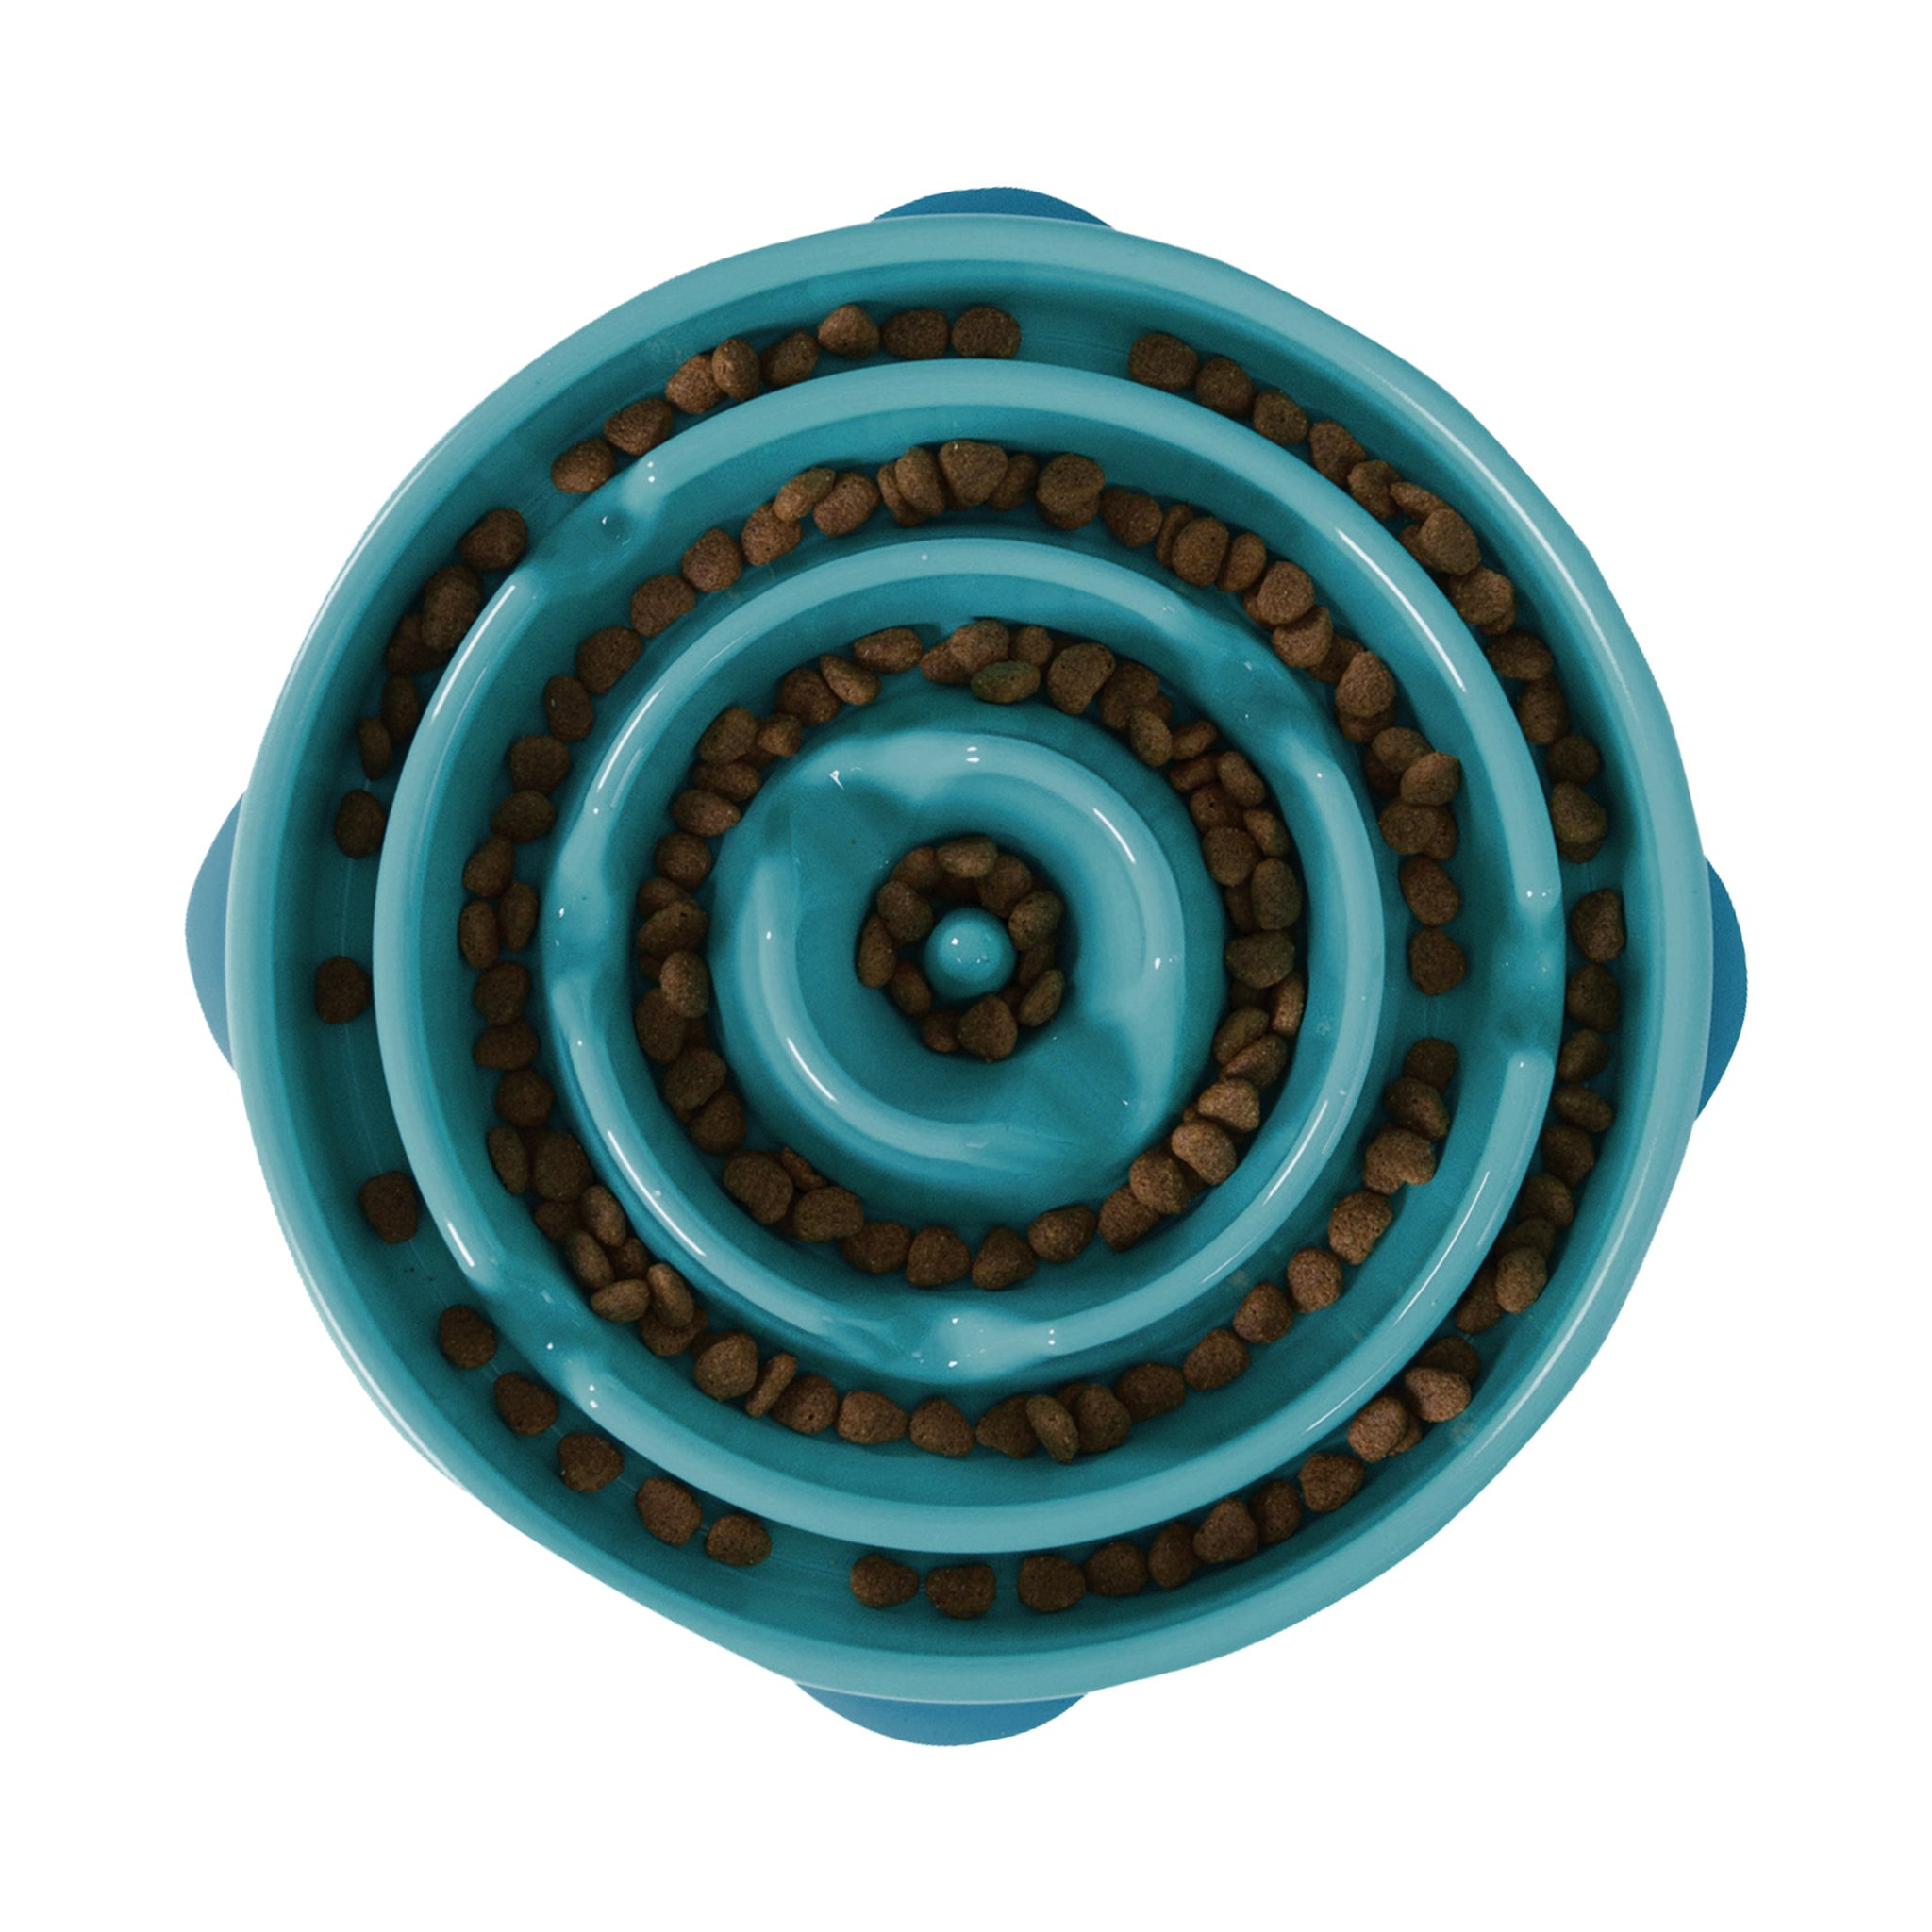 Outward Hound Slow Feeder Dog Bowl Fun Feeder Stop Bloat Bowl for Dogs, Large, Teal